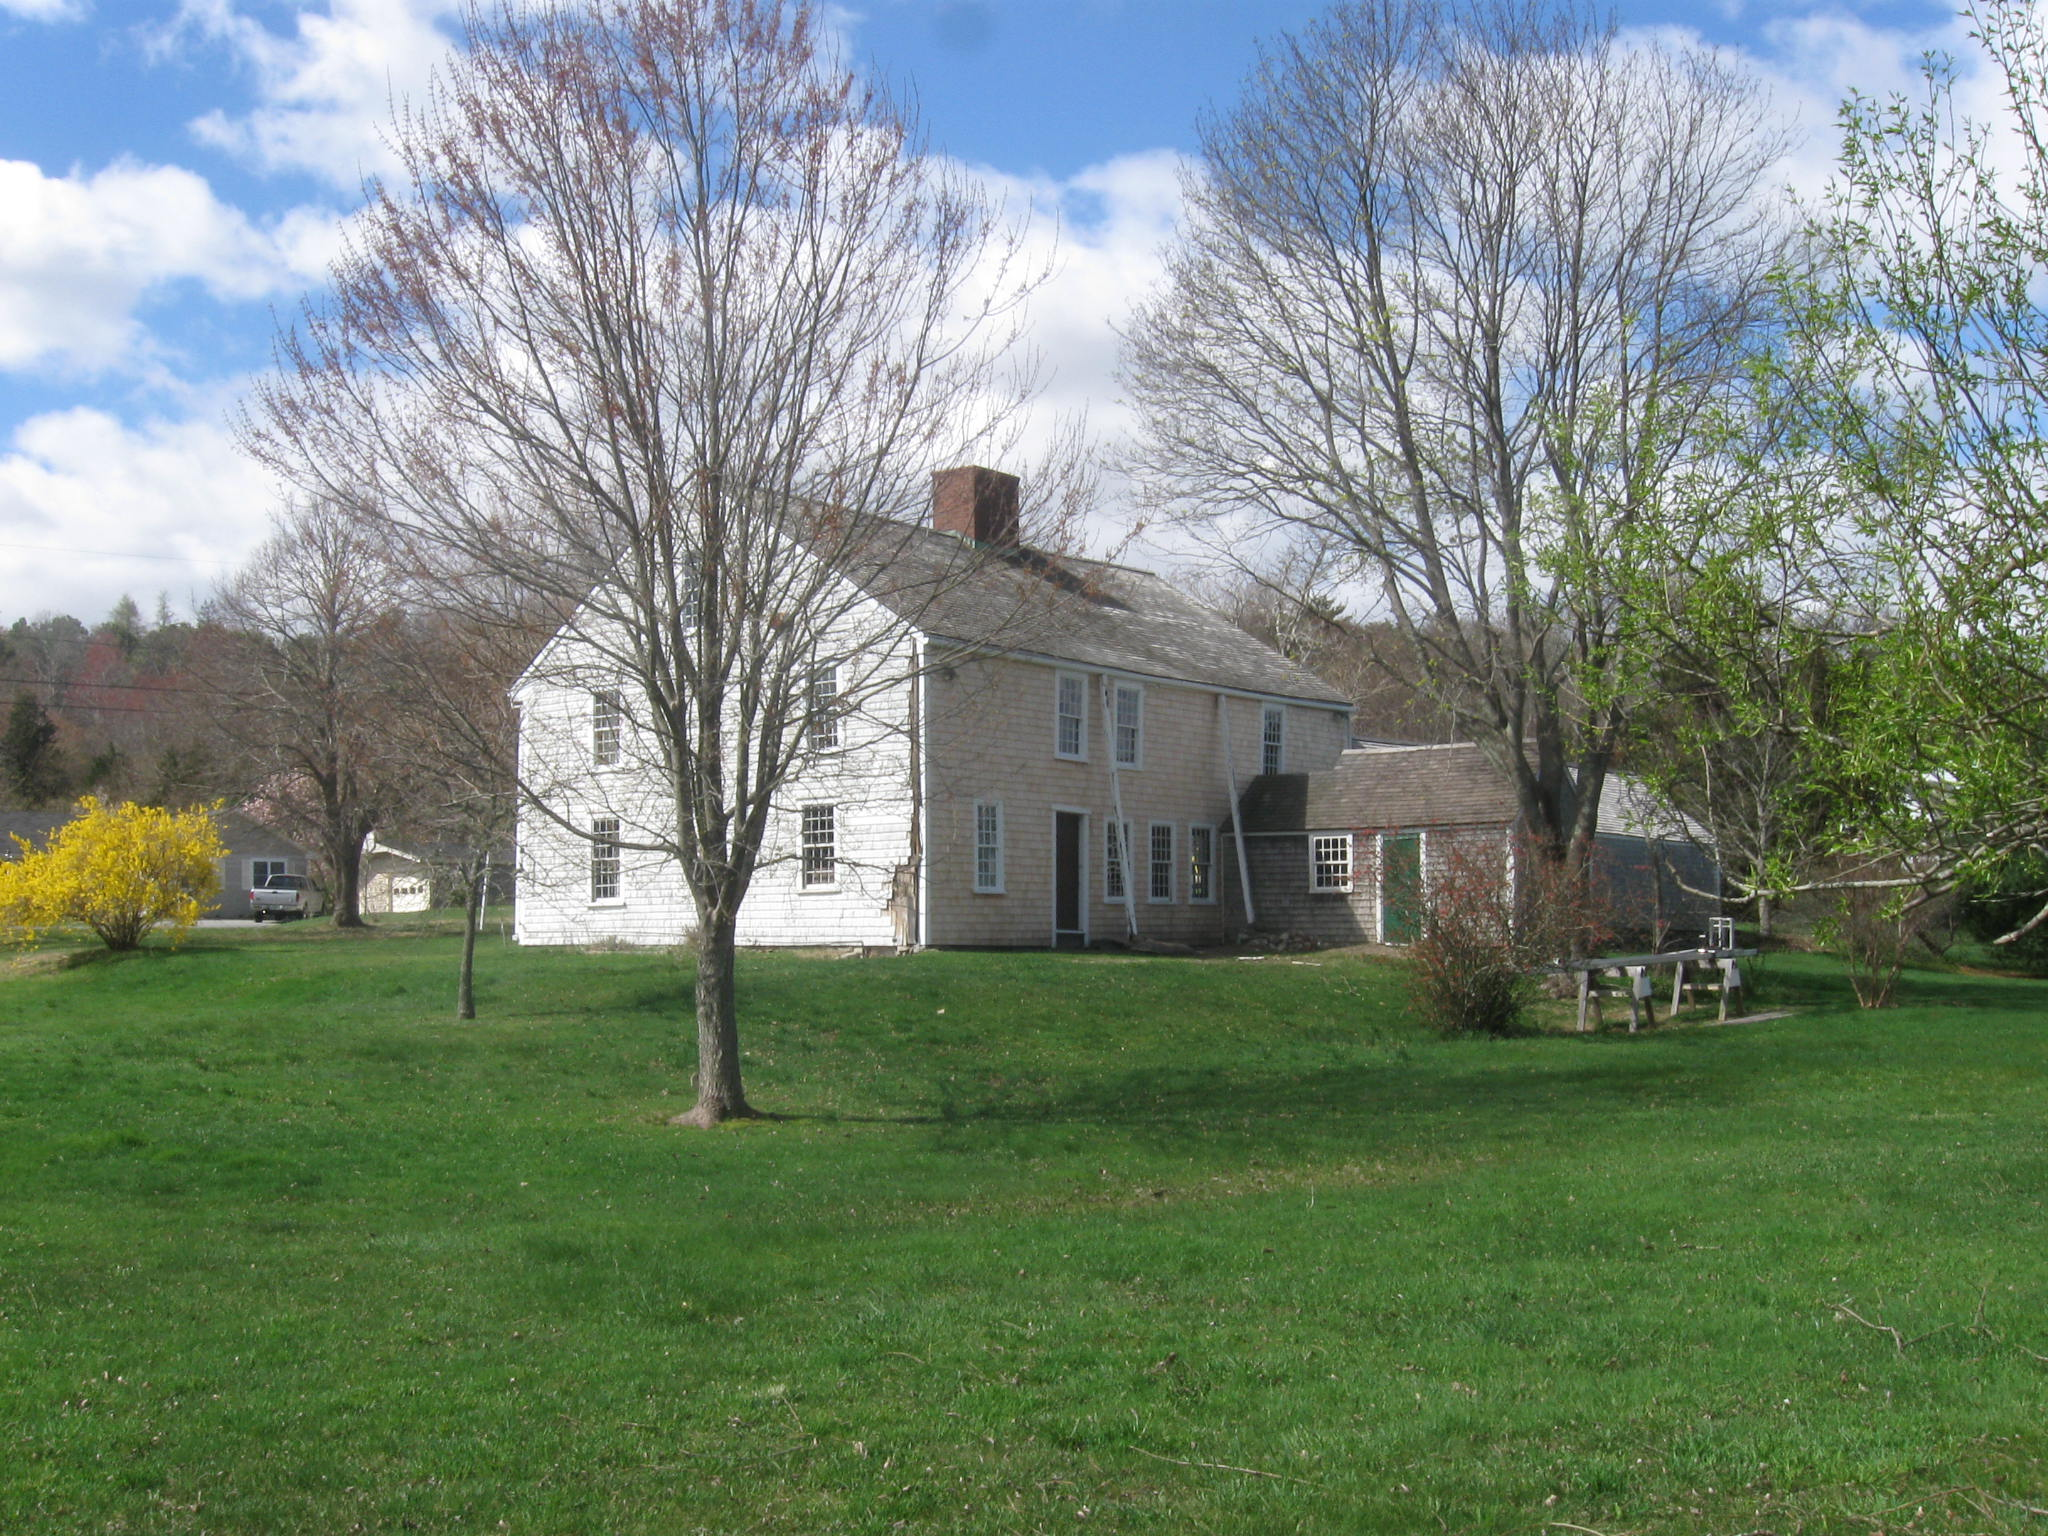 Wing fort house is a historic house in east sandwich wing fort house is a historic house in east sandwich massachusetts built in 1641 the wing fort house is recognized as the oldest home in new eng nvjuhfo Choice Image